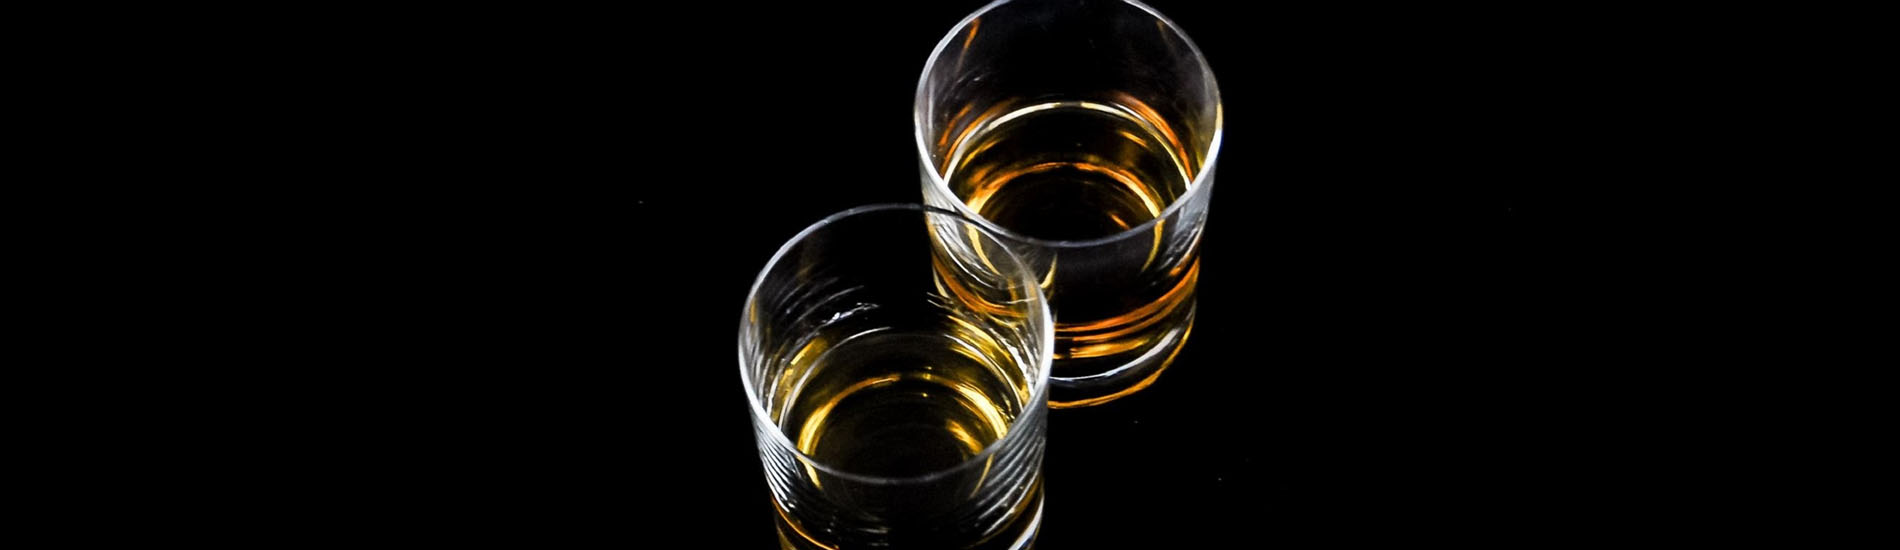 Alcohol Withdrawal Signs and Symptoms